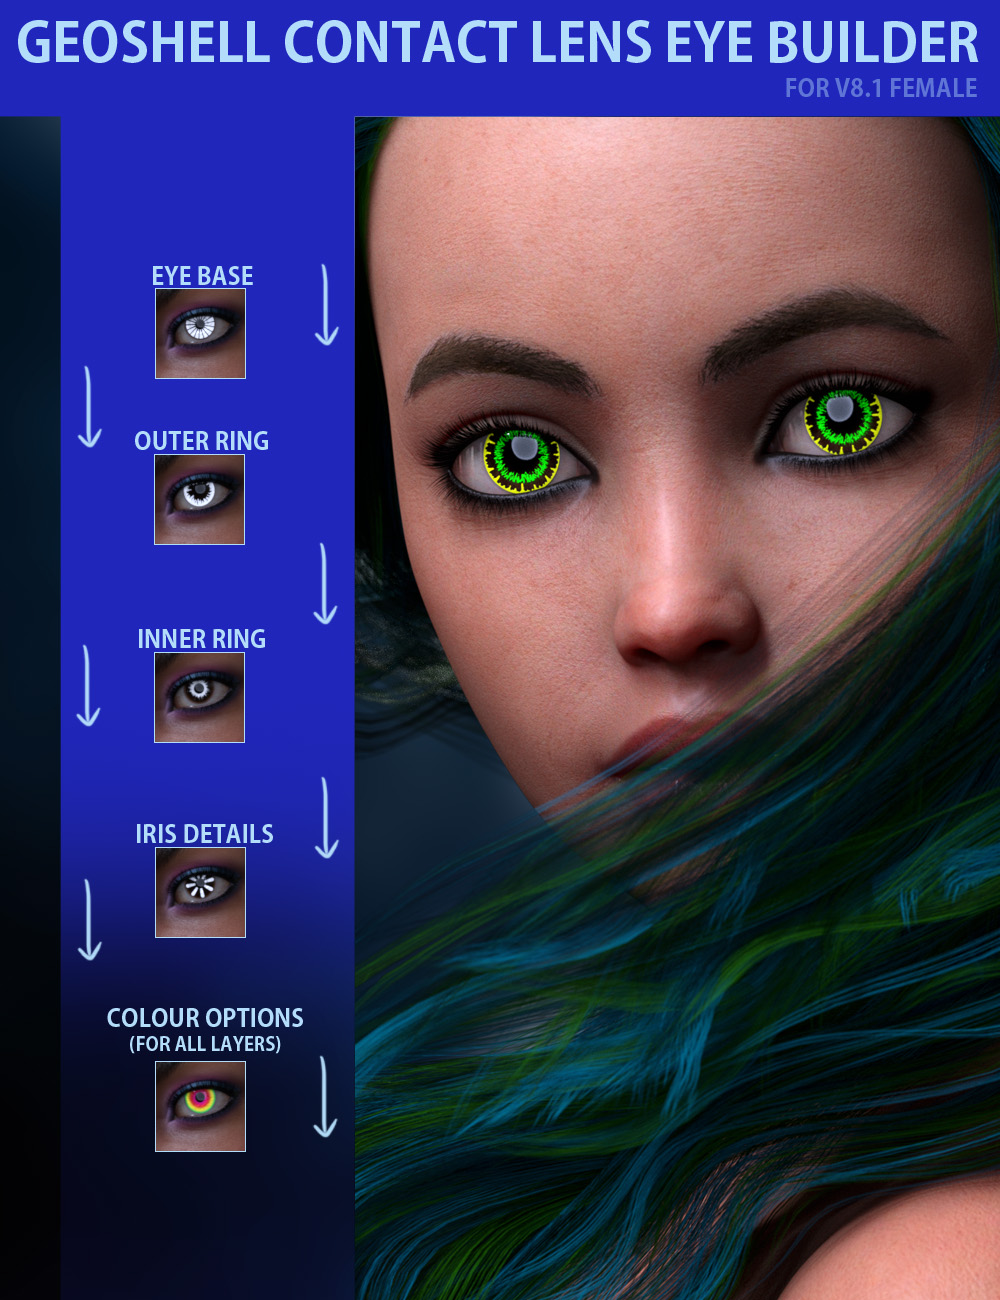 Geoshell Contact Lens Builder for Victoria 8.1 by: ForbiddenWhispers, 3D Models by Daz 3D